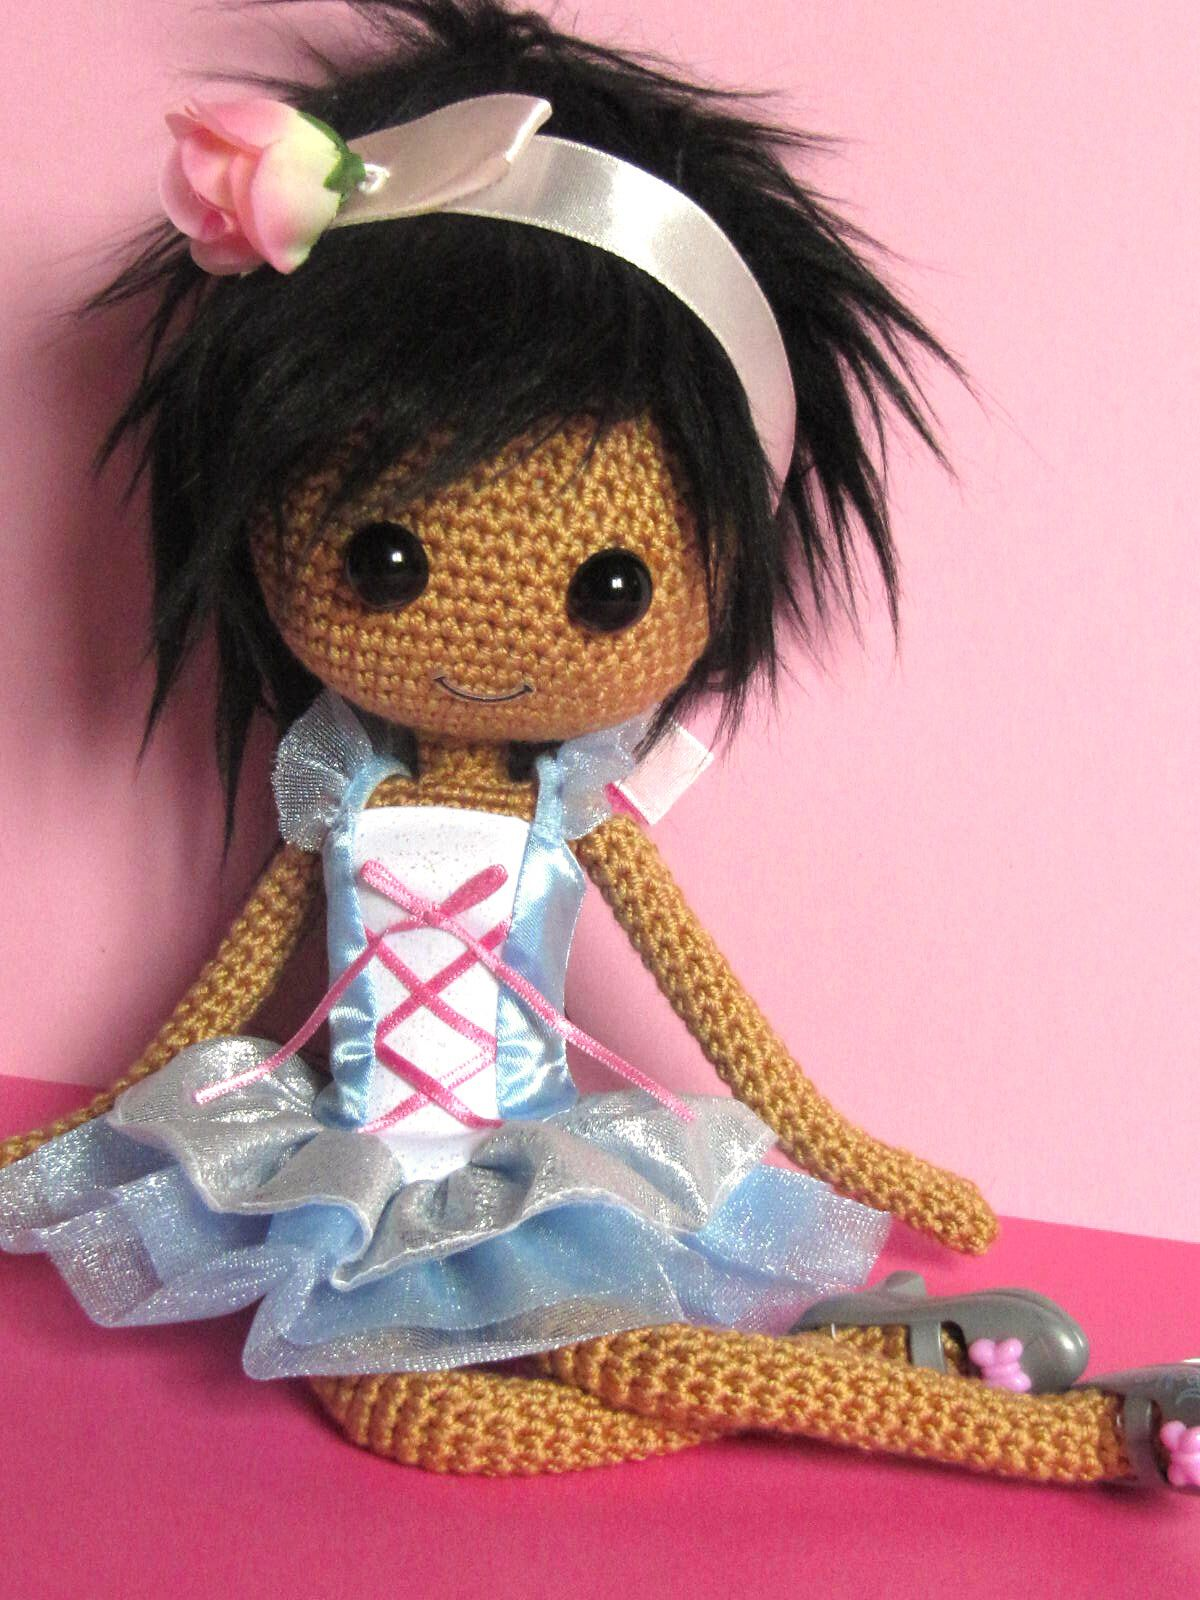 Crochet Doll : Crochet doll Corchet/knit/sew Pinterest